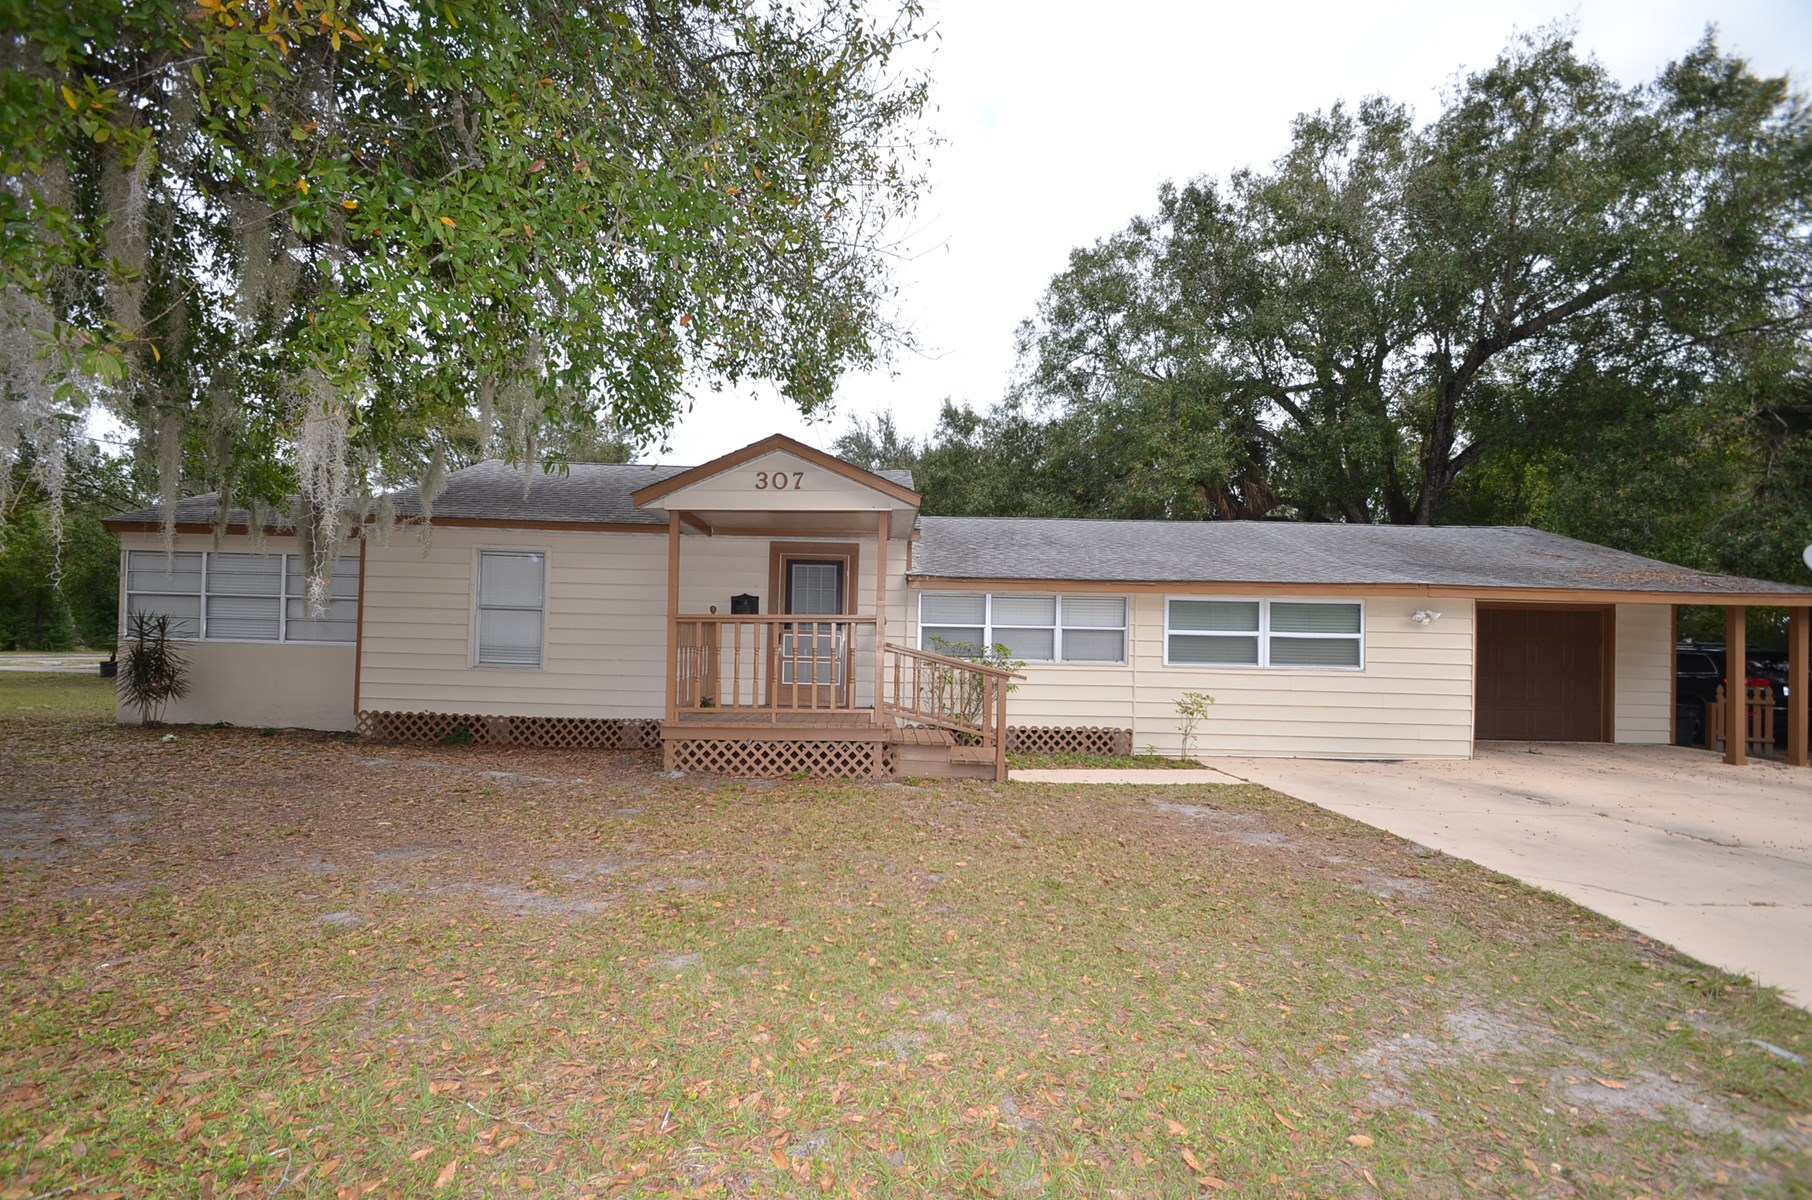 2/2 Home in Arcadia, Florida!